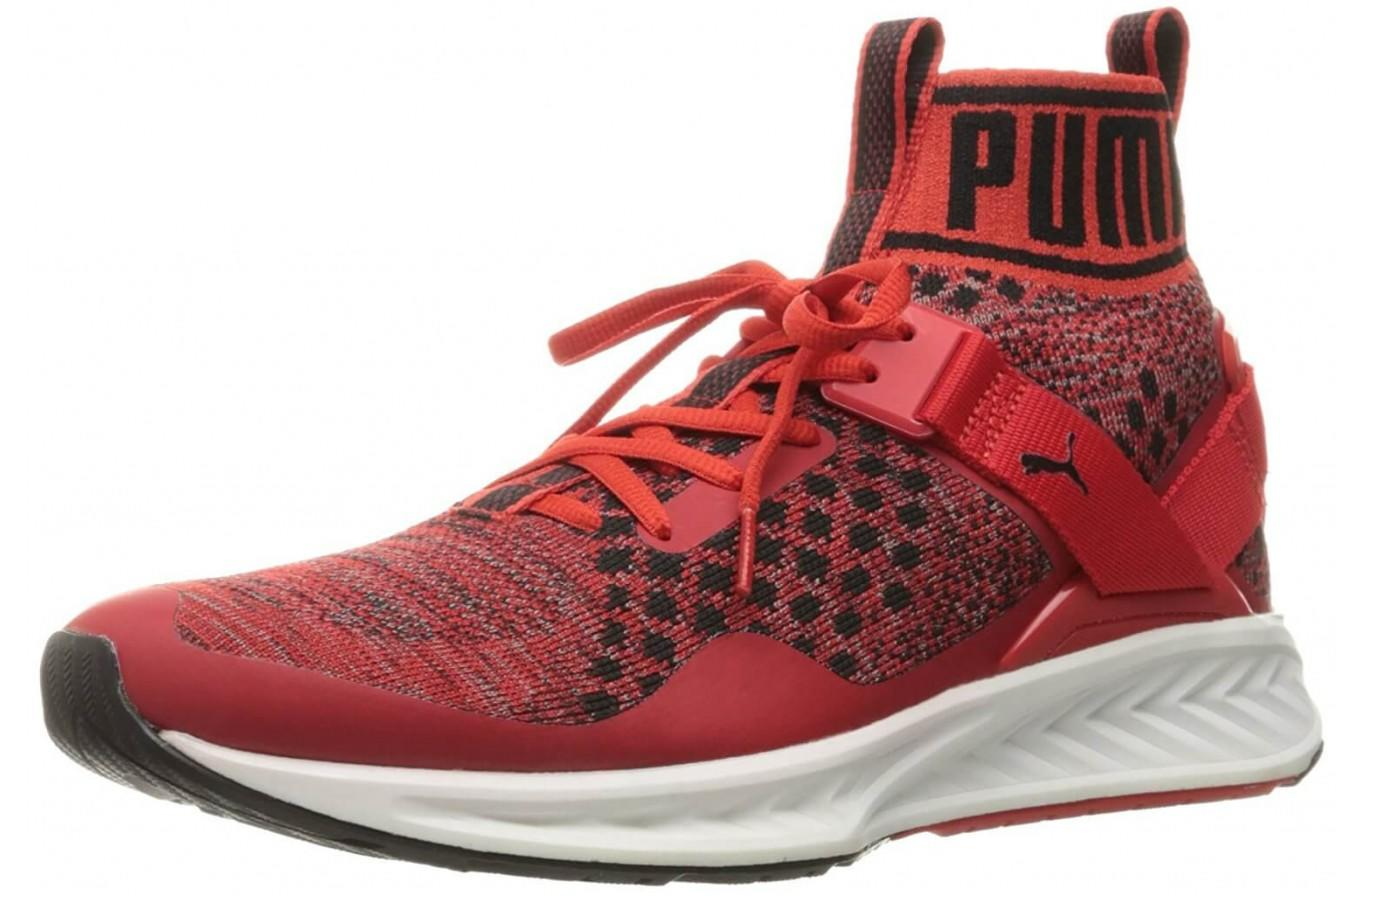 outlet store 3821a 07000 Puma Ignite evoKnit Fully Reviewed